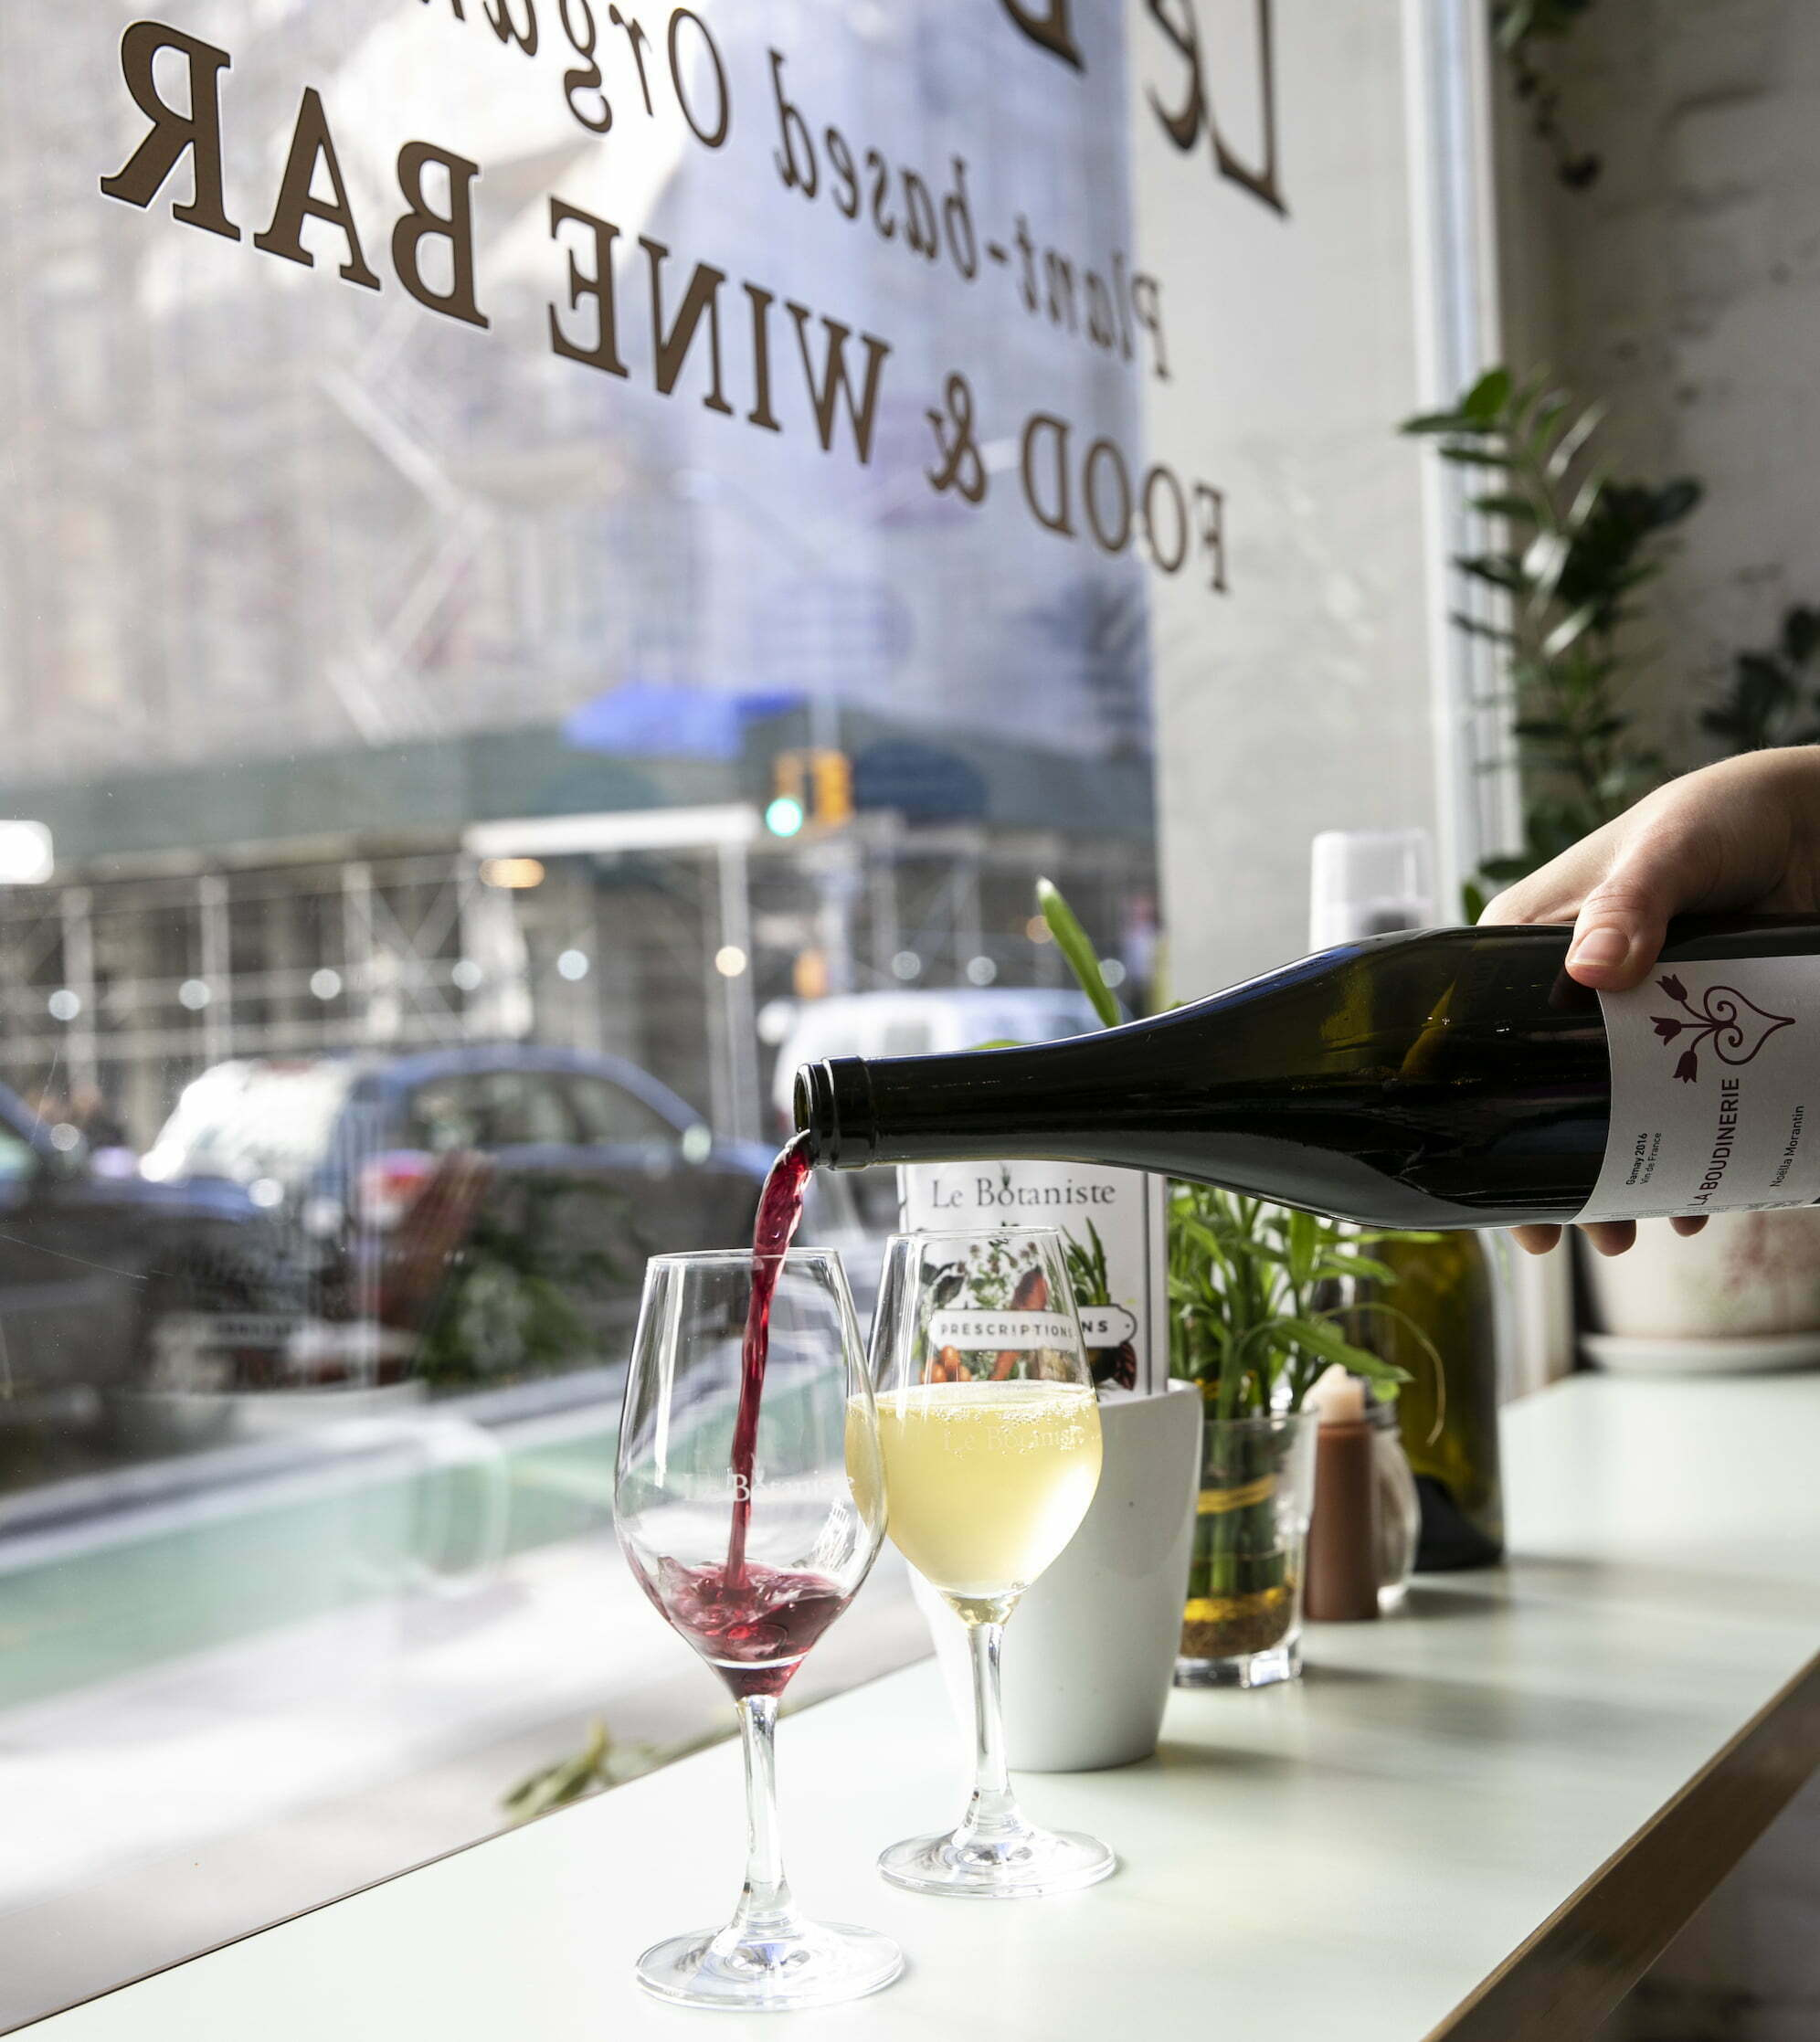 Le Botaniste Natural Wine Bar